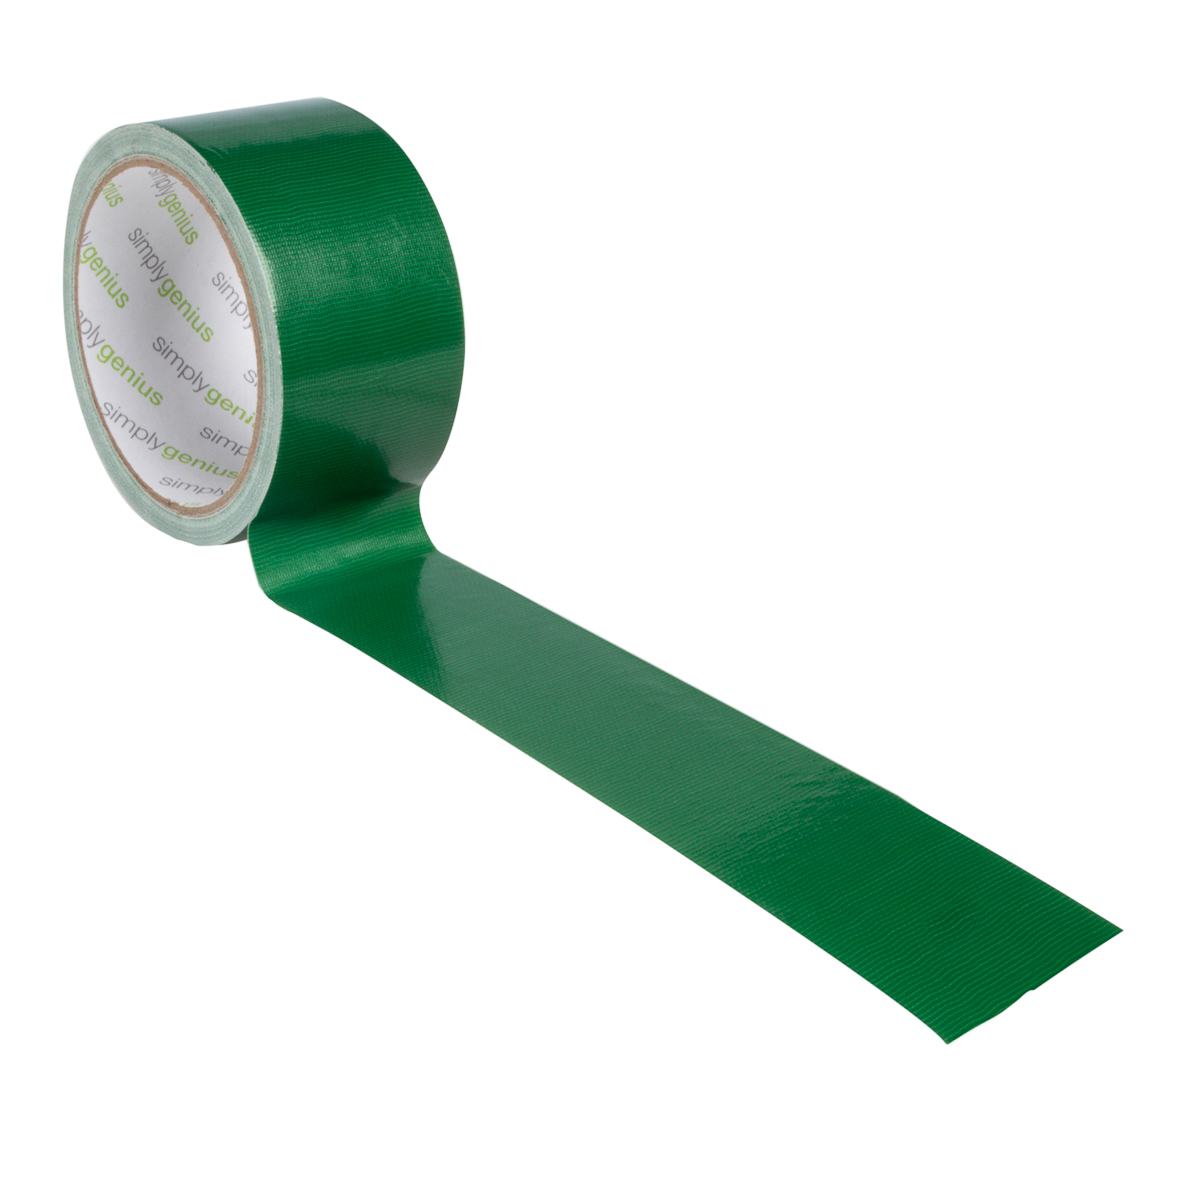 Simply-Genius-Duct-Tape-Roll-Colors-Patterns-Craft-Supplies-Colored-amp-Patterned thumbnail 162